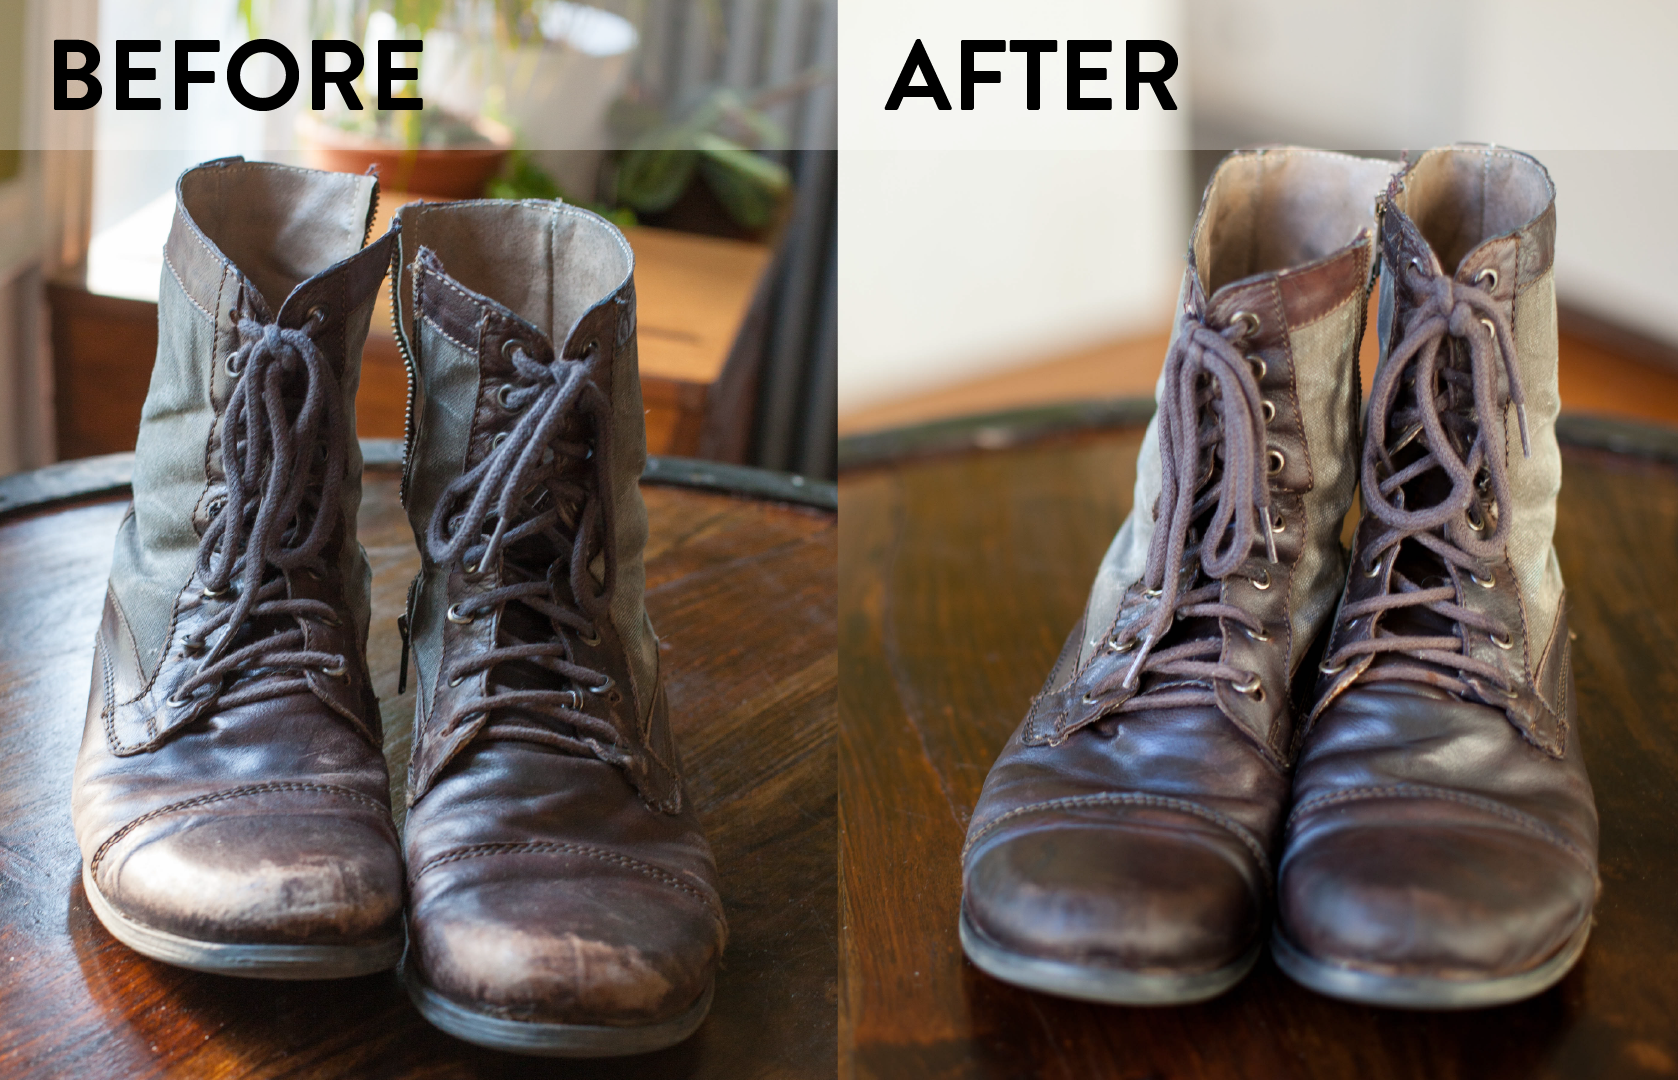 Before and After Caring for Leather